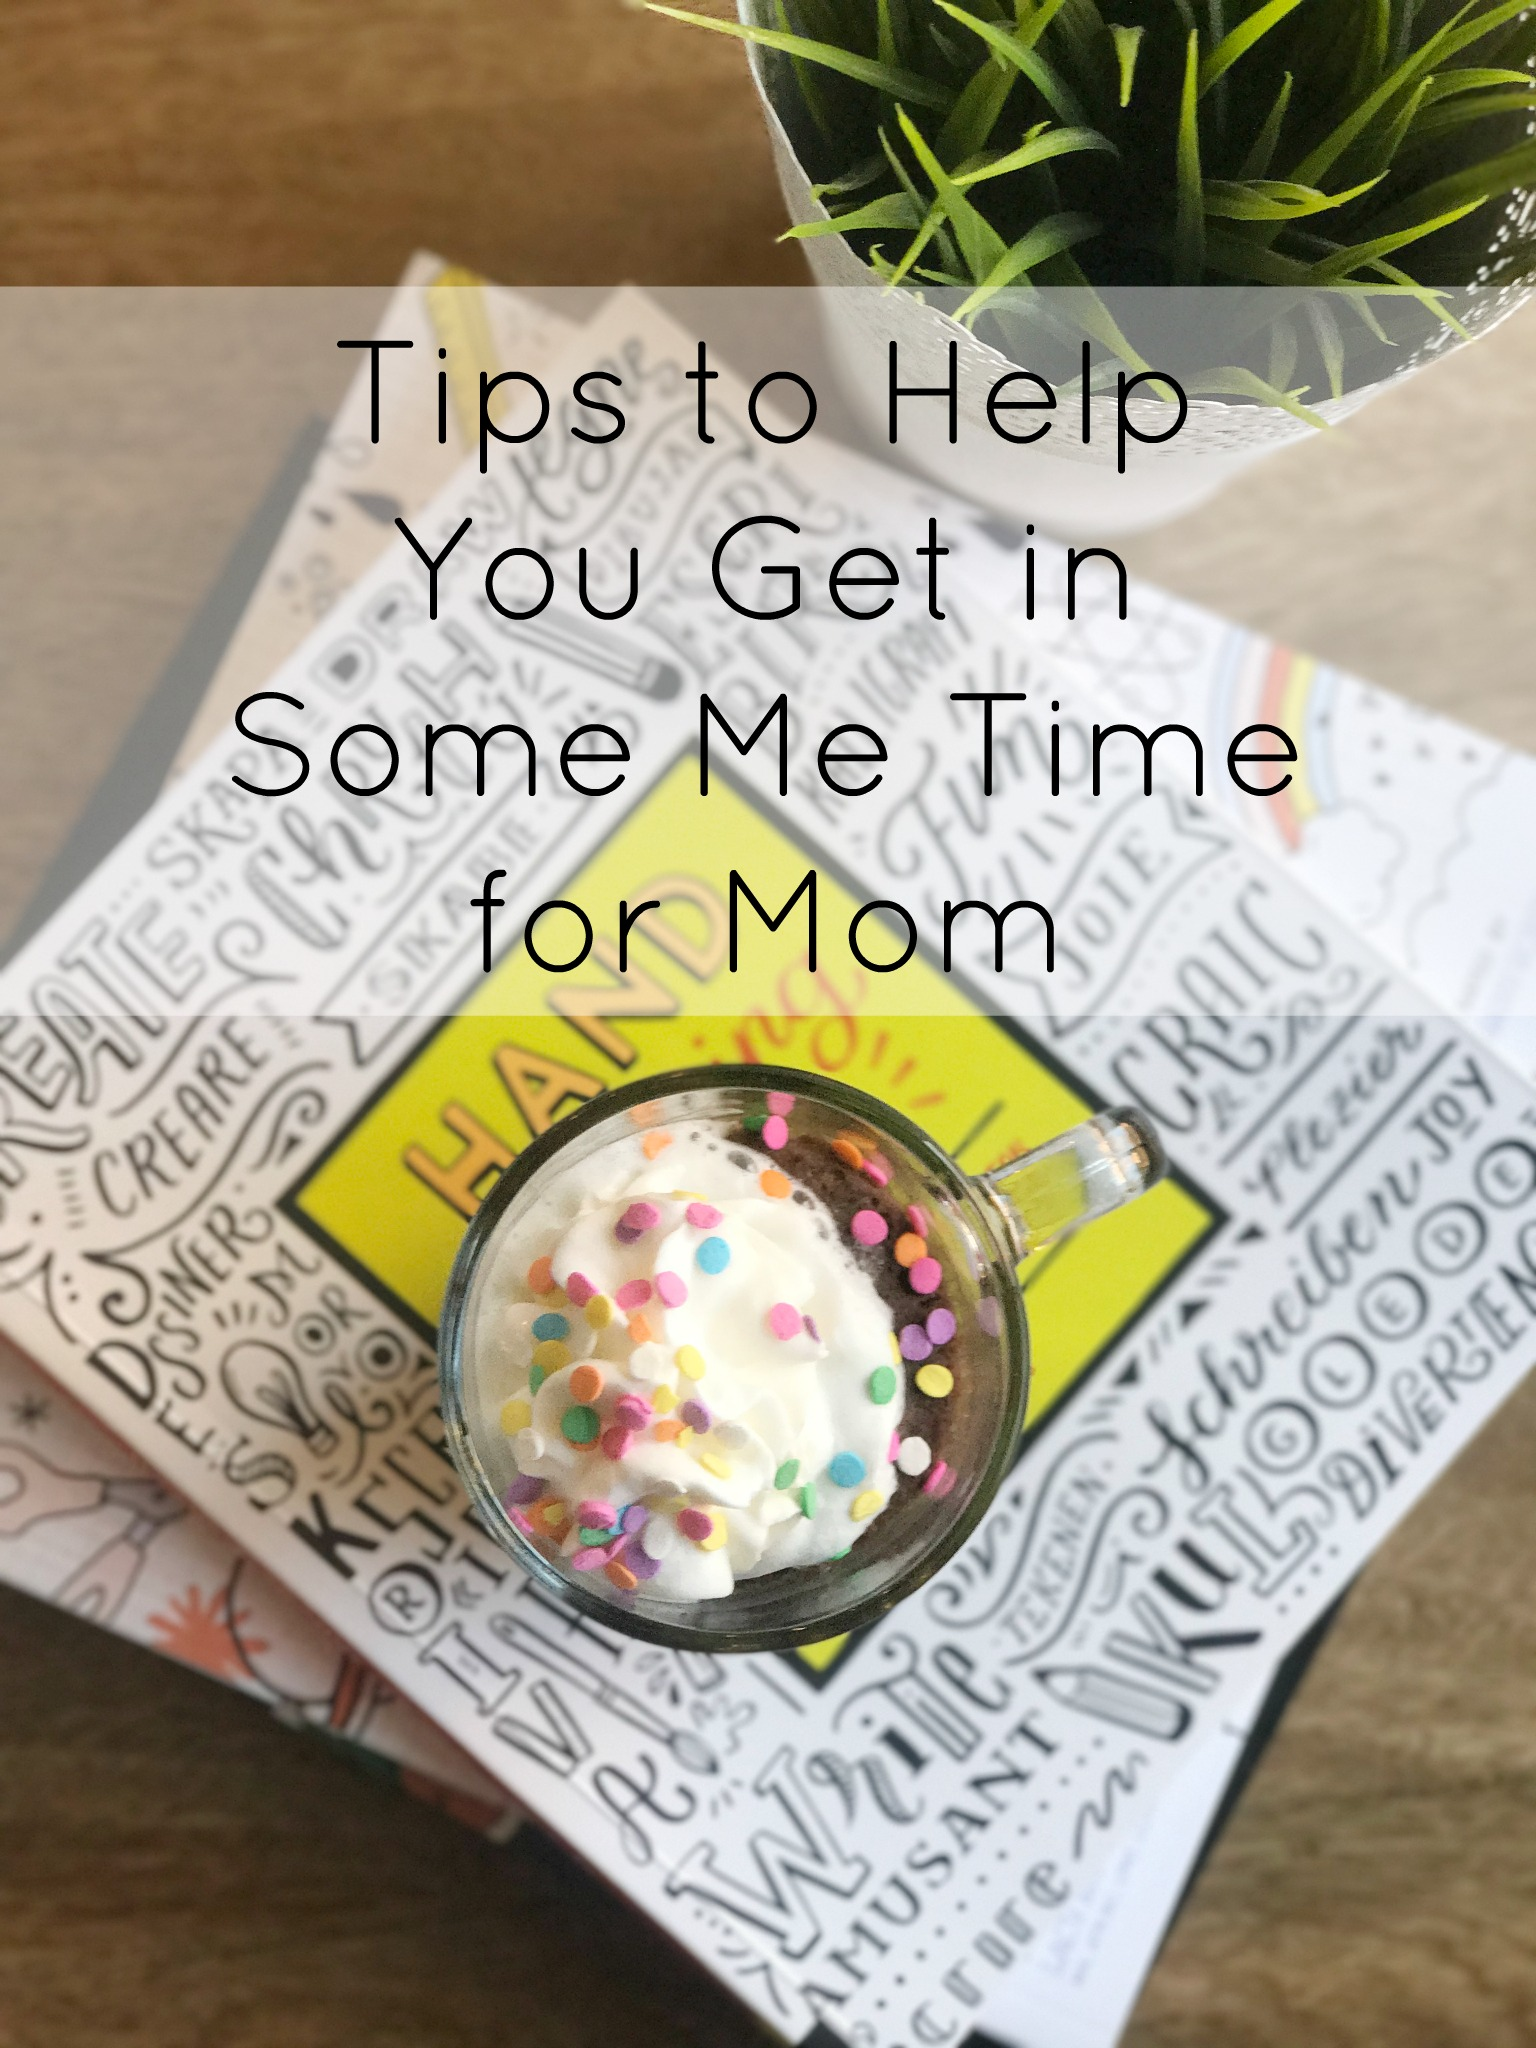 Tips to Help You Get in Some Me Time for Mom